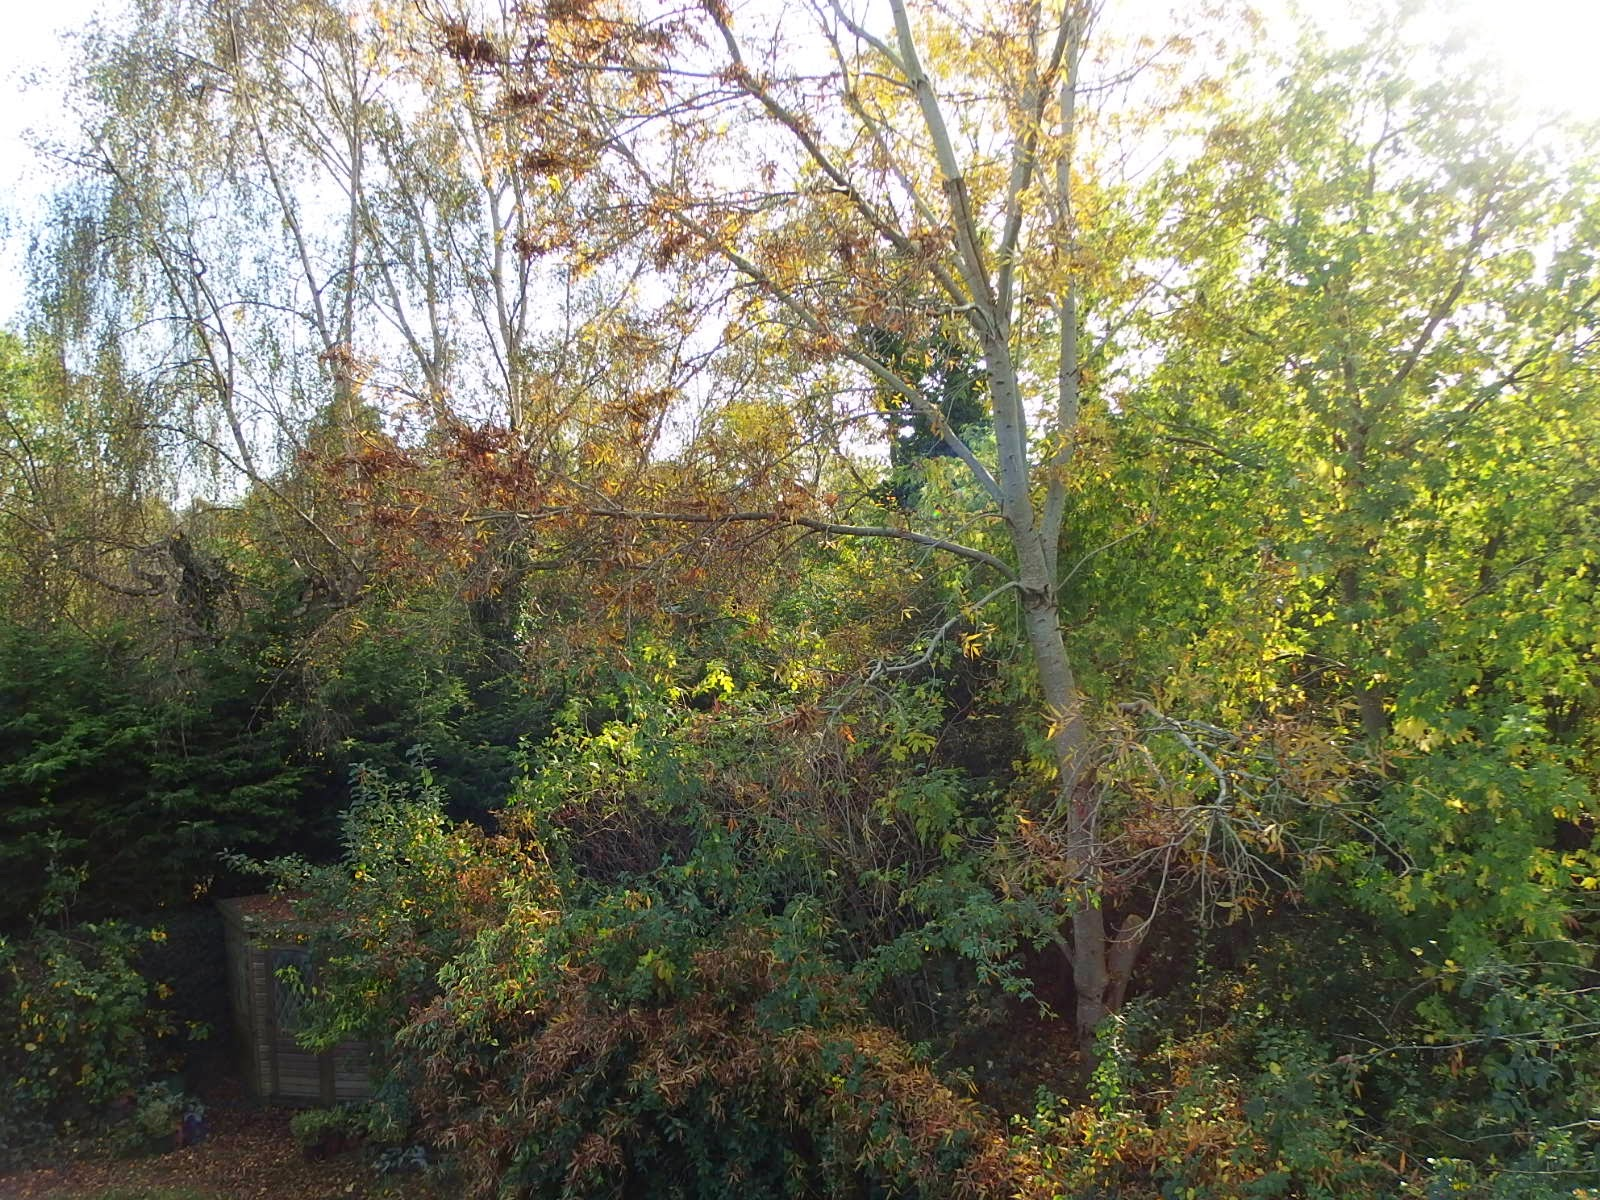 Photo of ash tree with almost no leaves left - October 2014